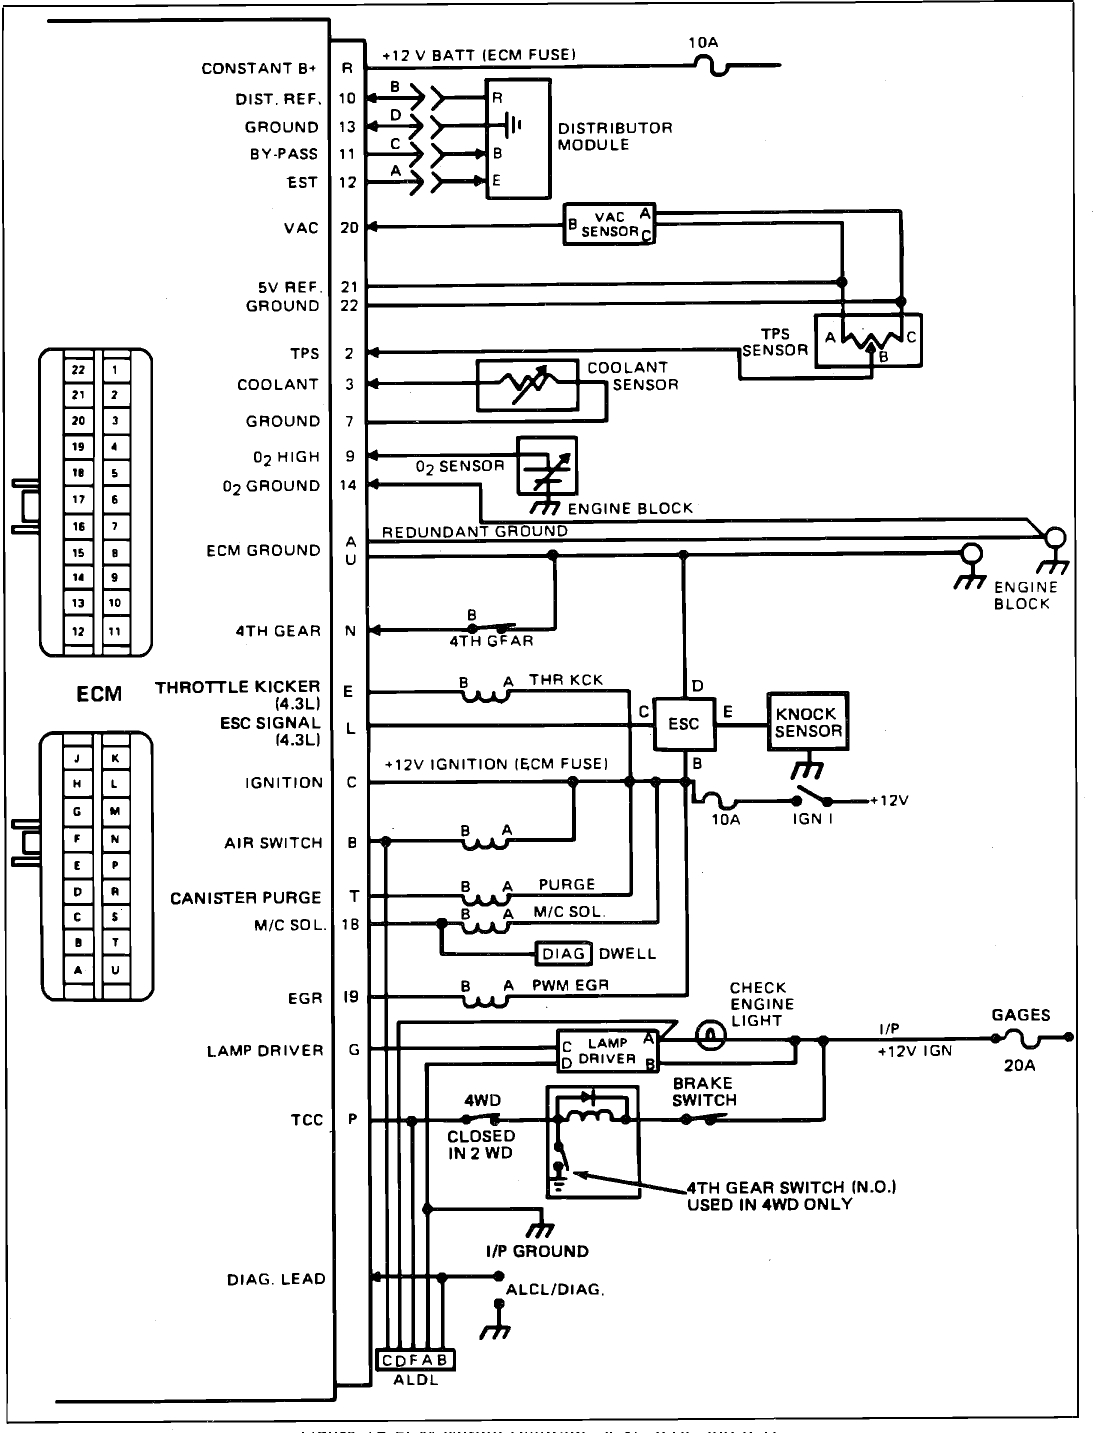 2006 chevy van wiring diagram opinions about wiring diagram u2022 rh  voterid co 1995 Chevy C1500